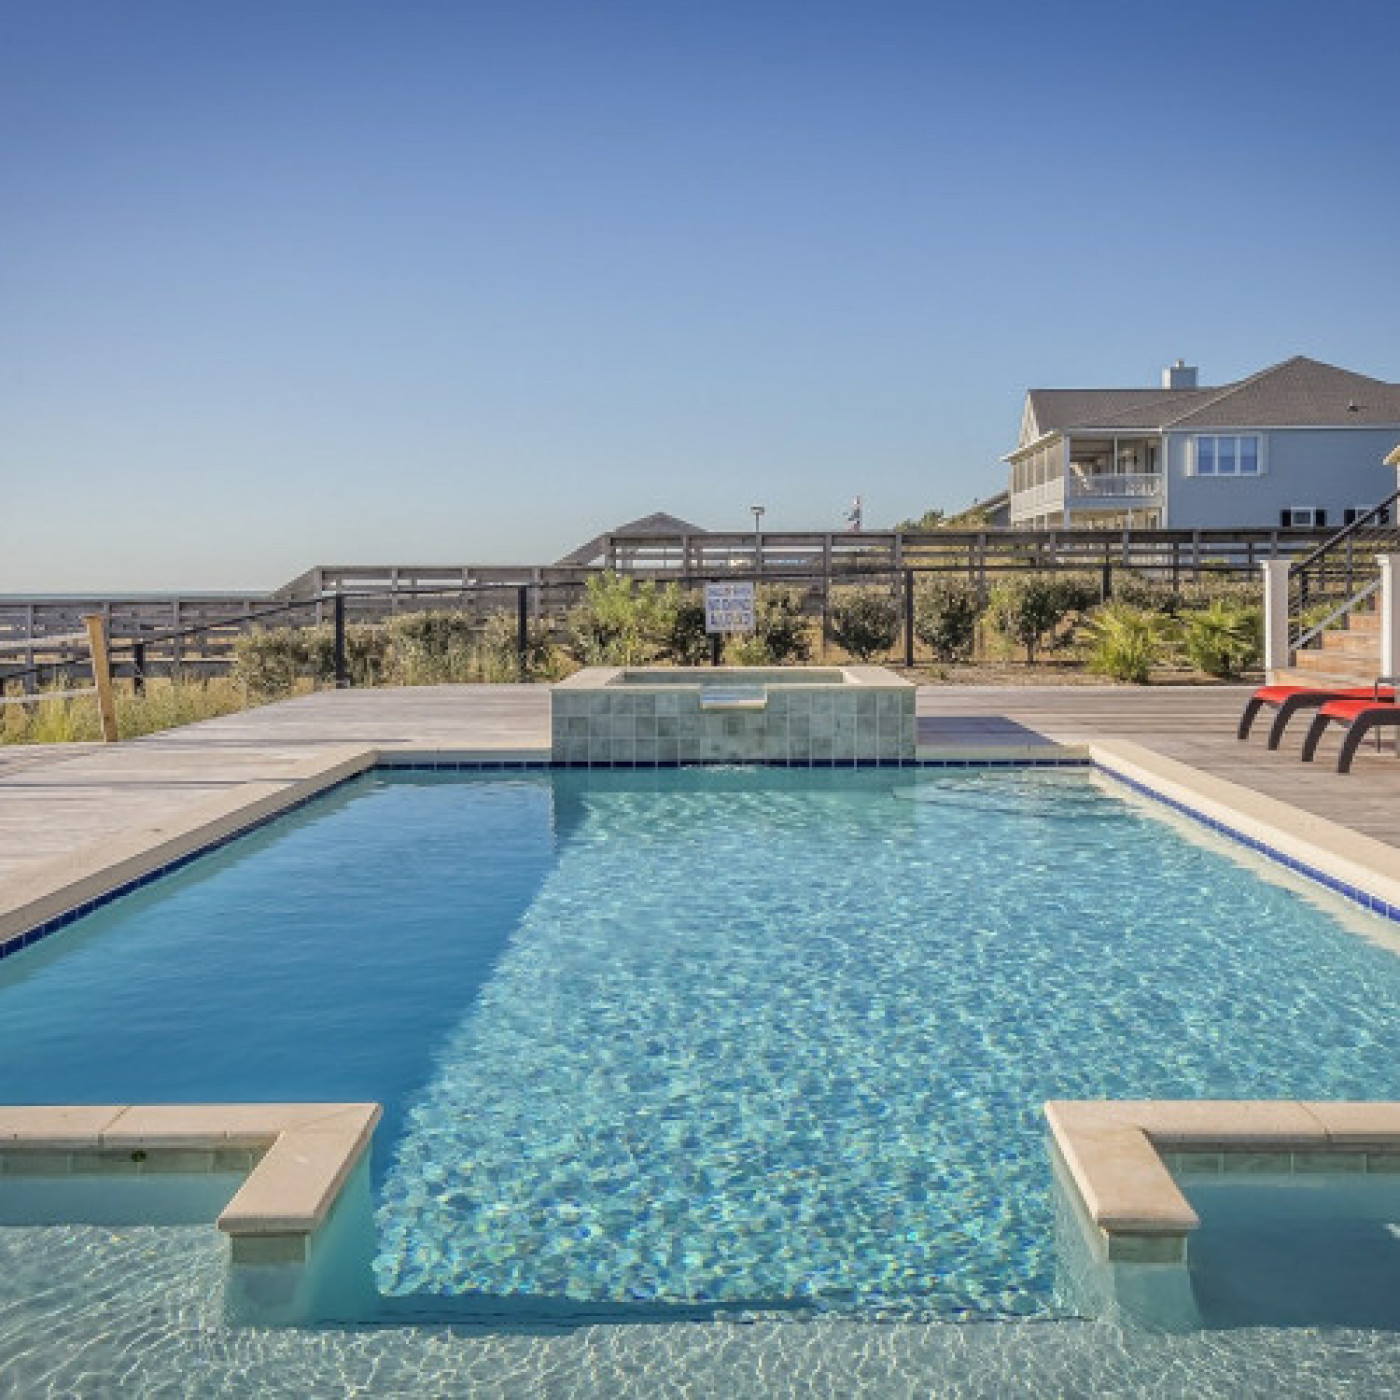 When to Get Your Pool Inspected